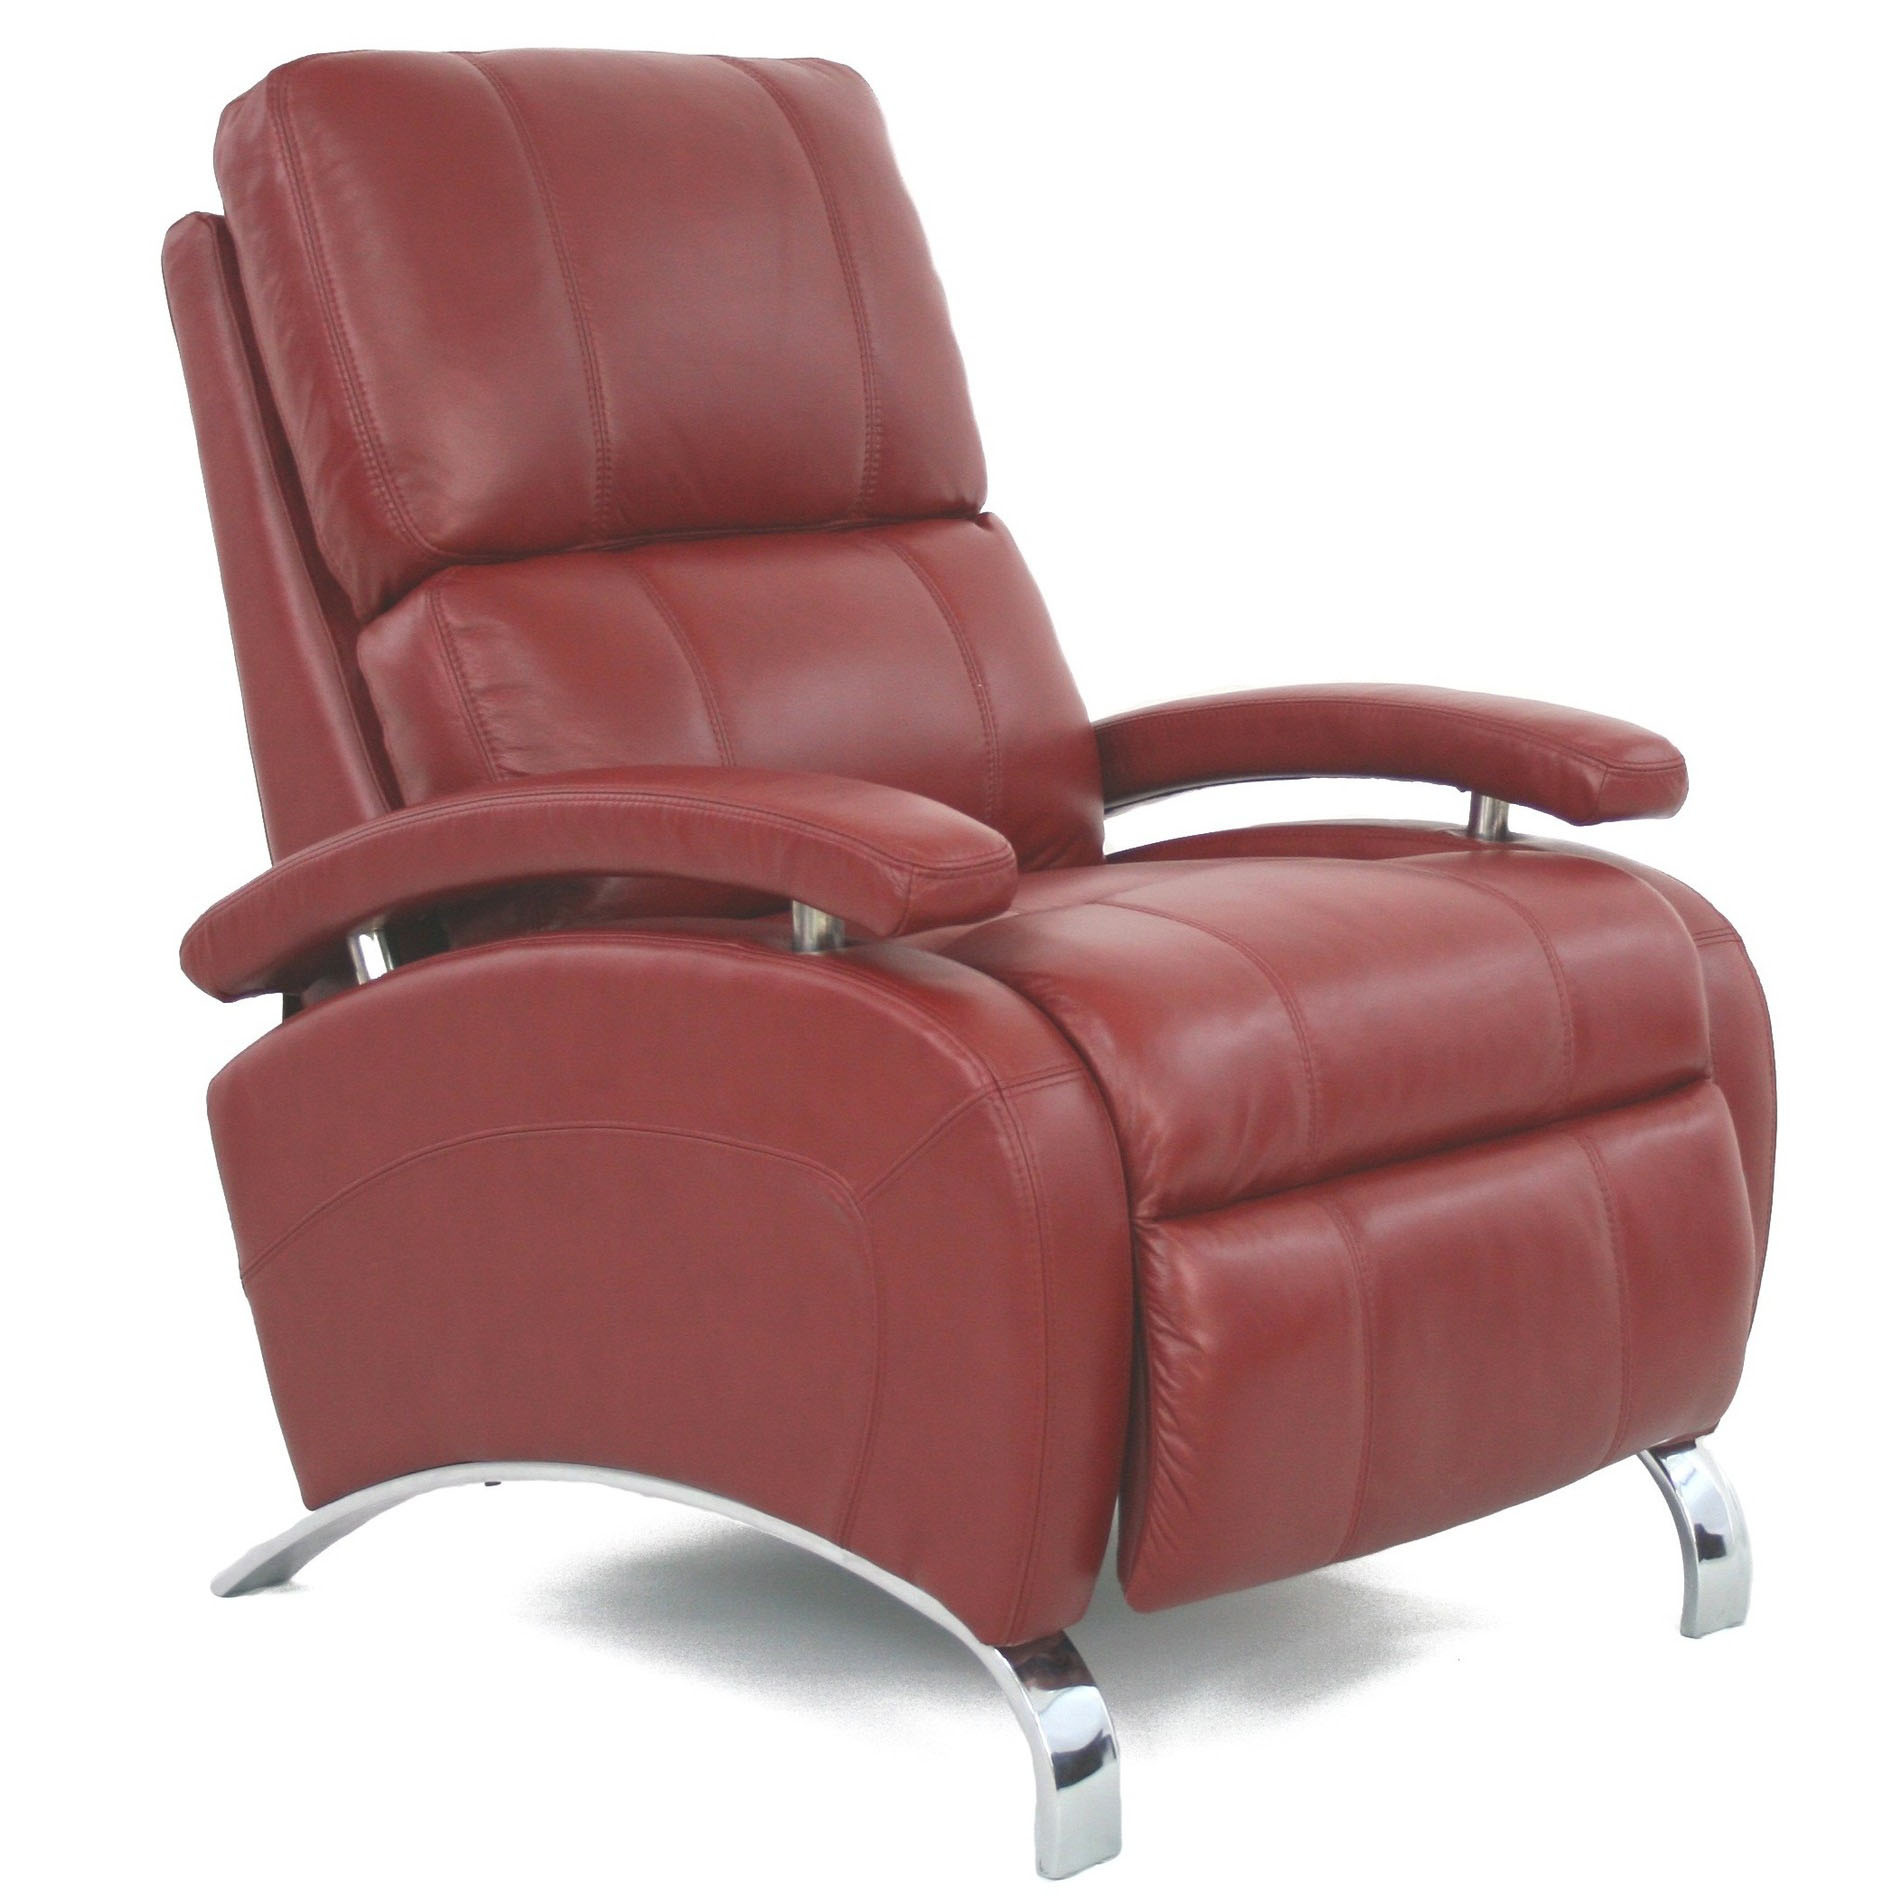 Barcalounger Oracle II Recliner Chair Red Leather  sc 1 st  Vitalityweb.com & Barcalounger Oracle II Recliner Chair - Leather Recliner Chair ... islam-shia.org